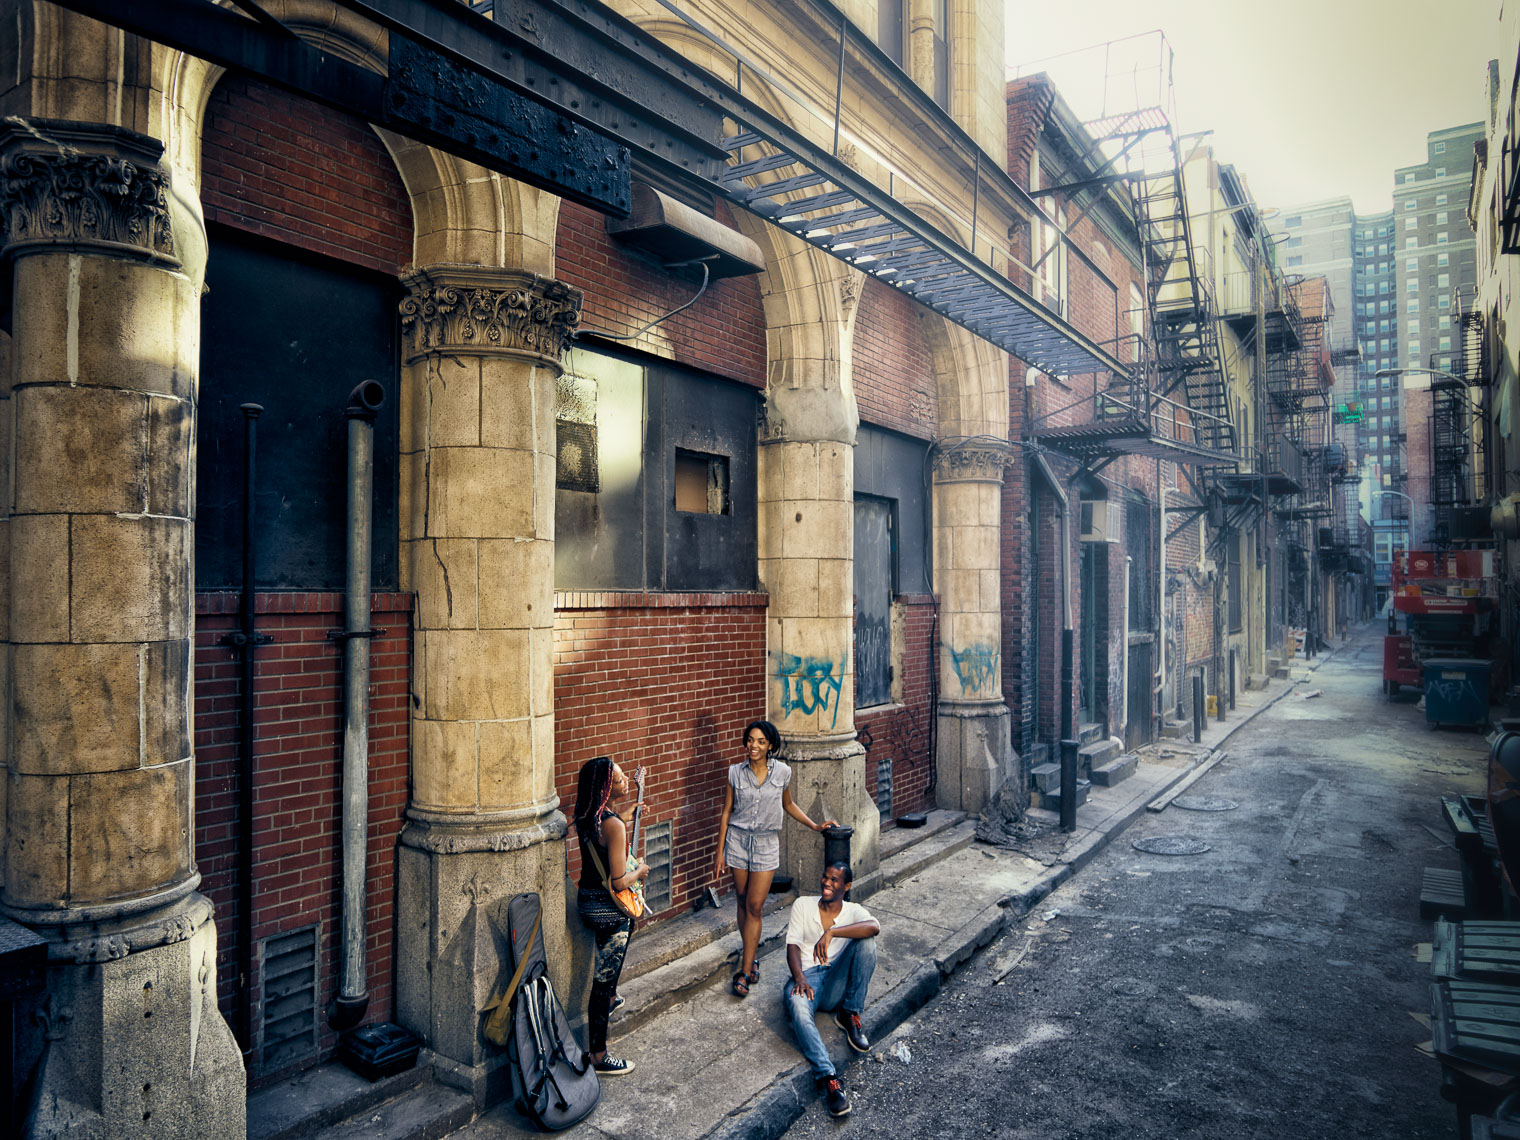 Kevin Steele - hanging out in an urban Philadelphia alley